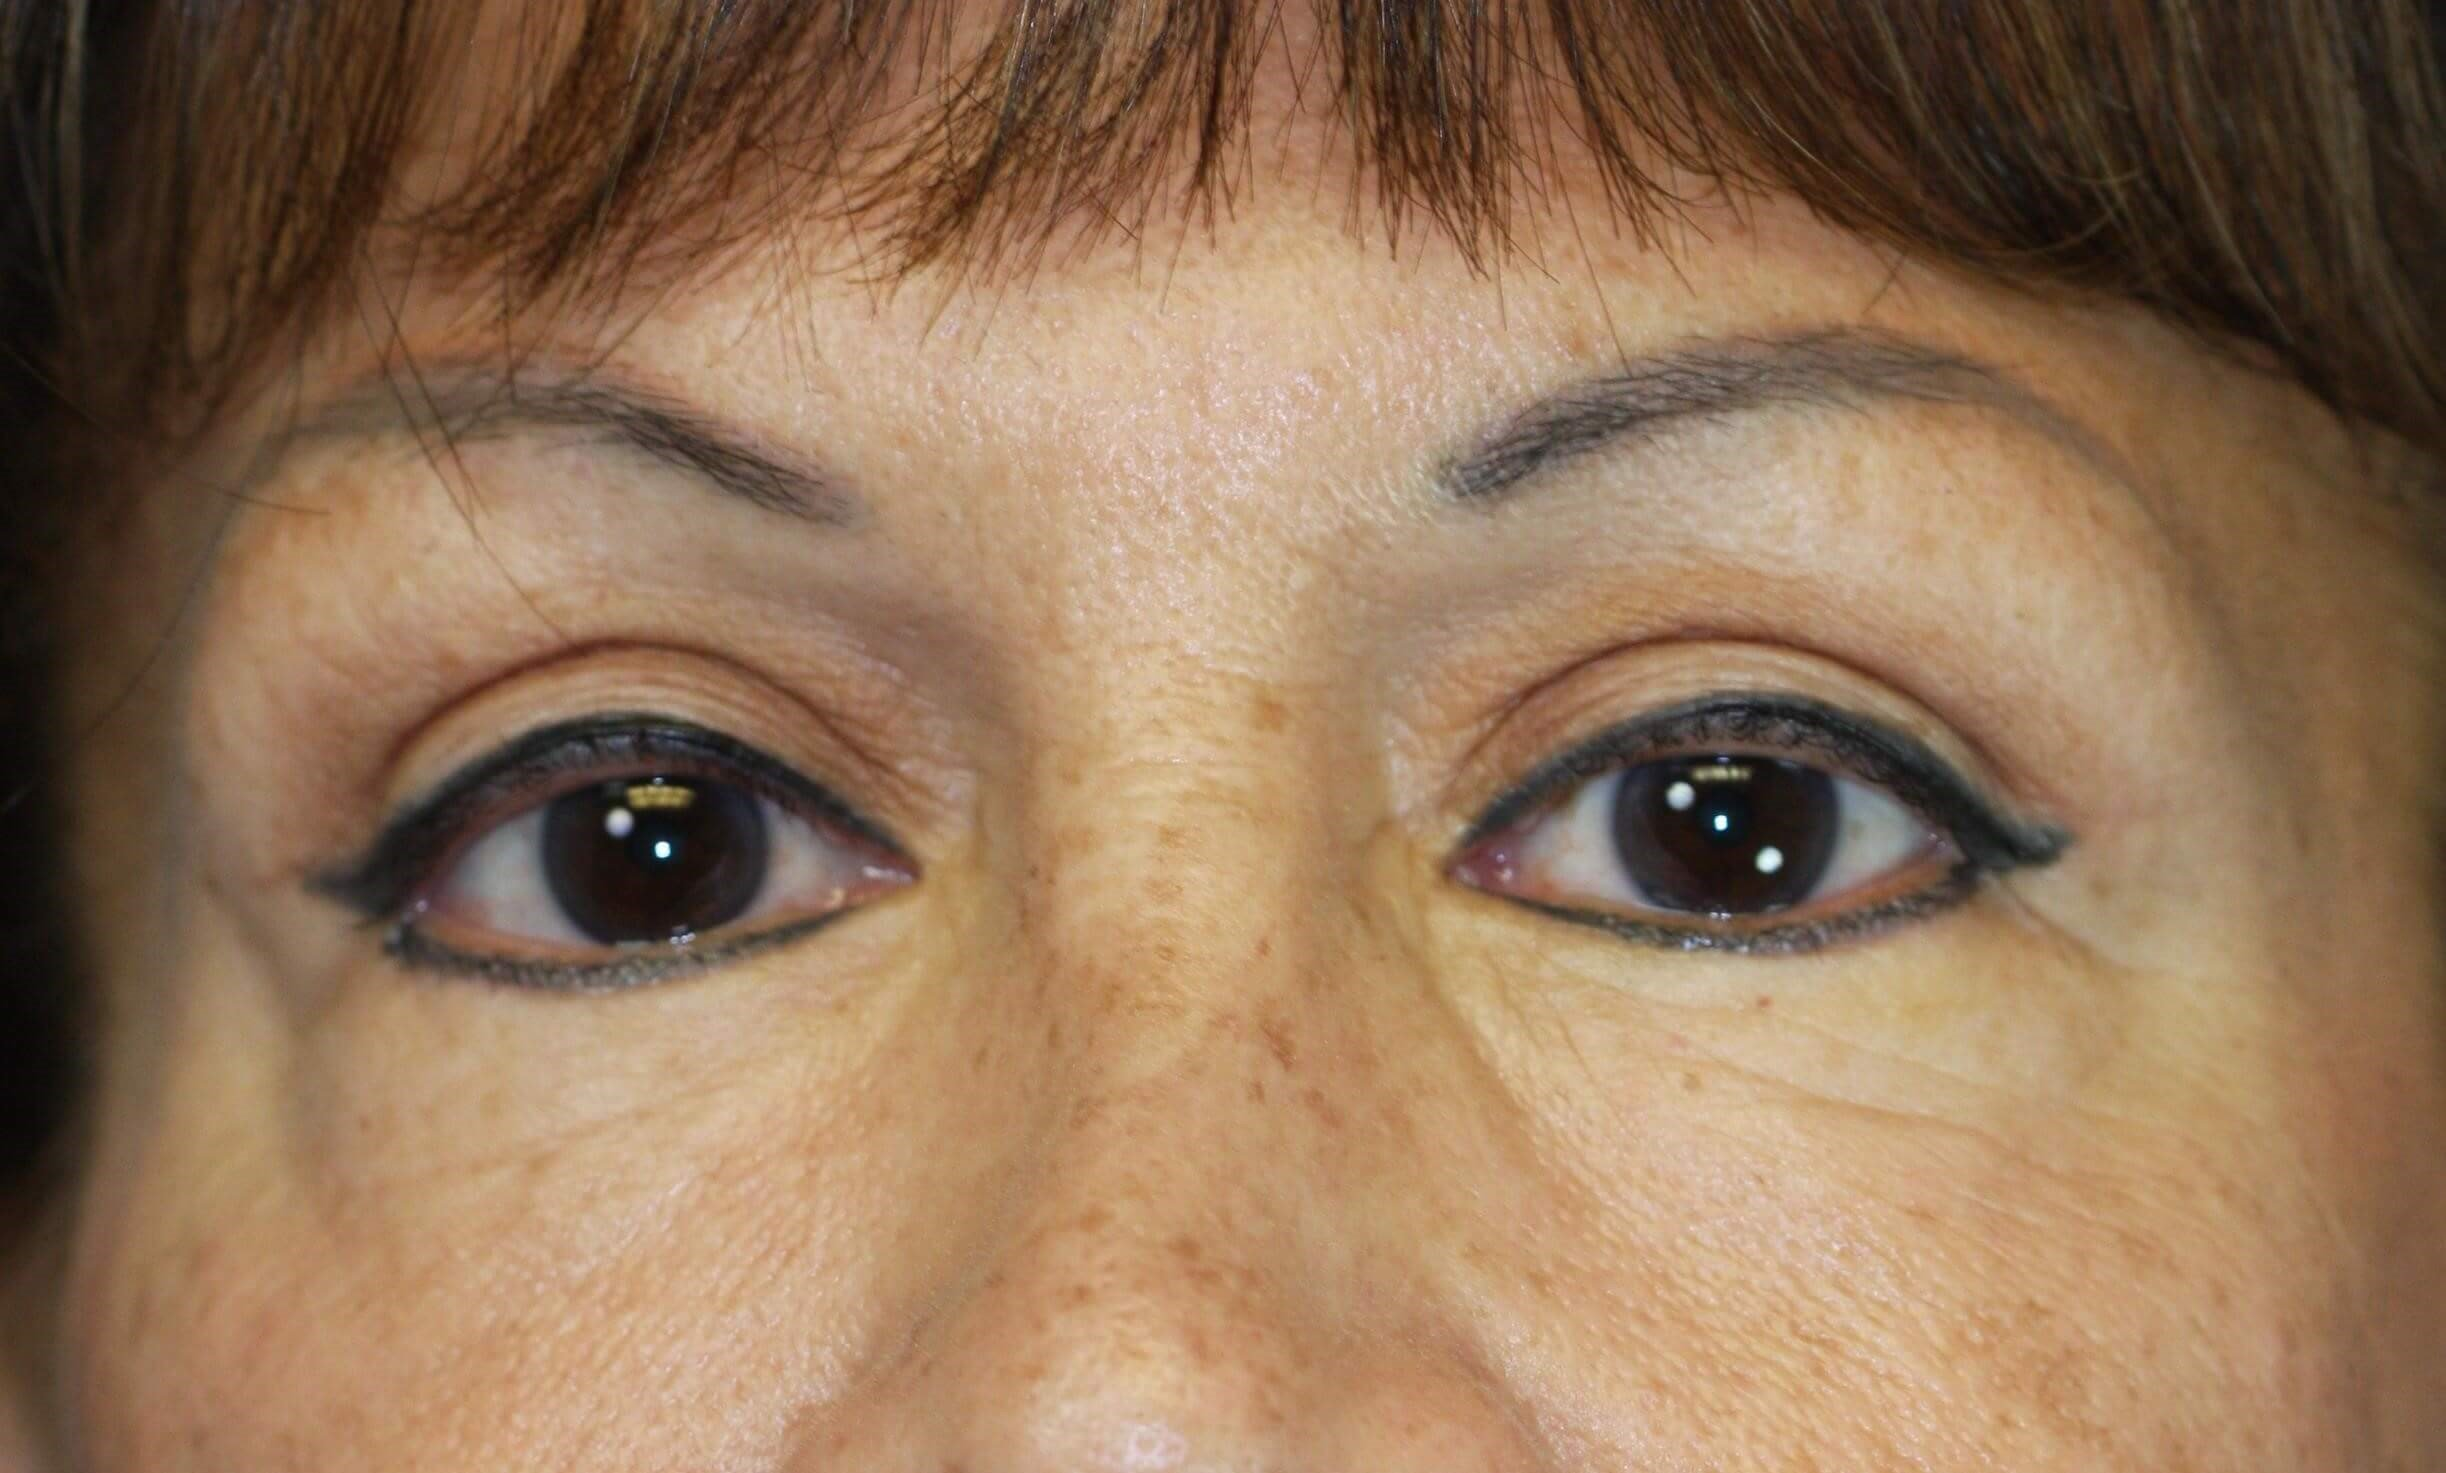 Eyelids in Downers Grove, IL 3 months after